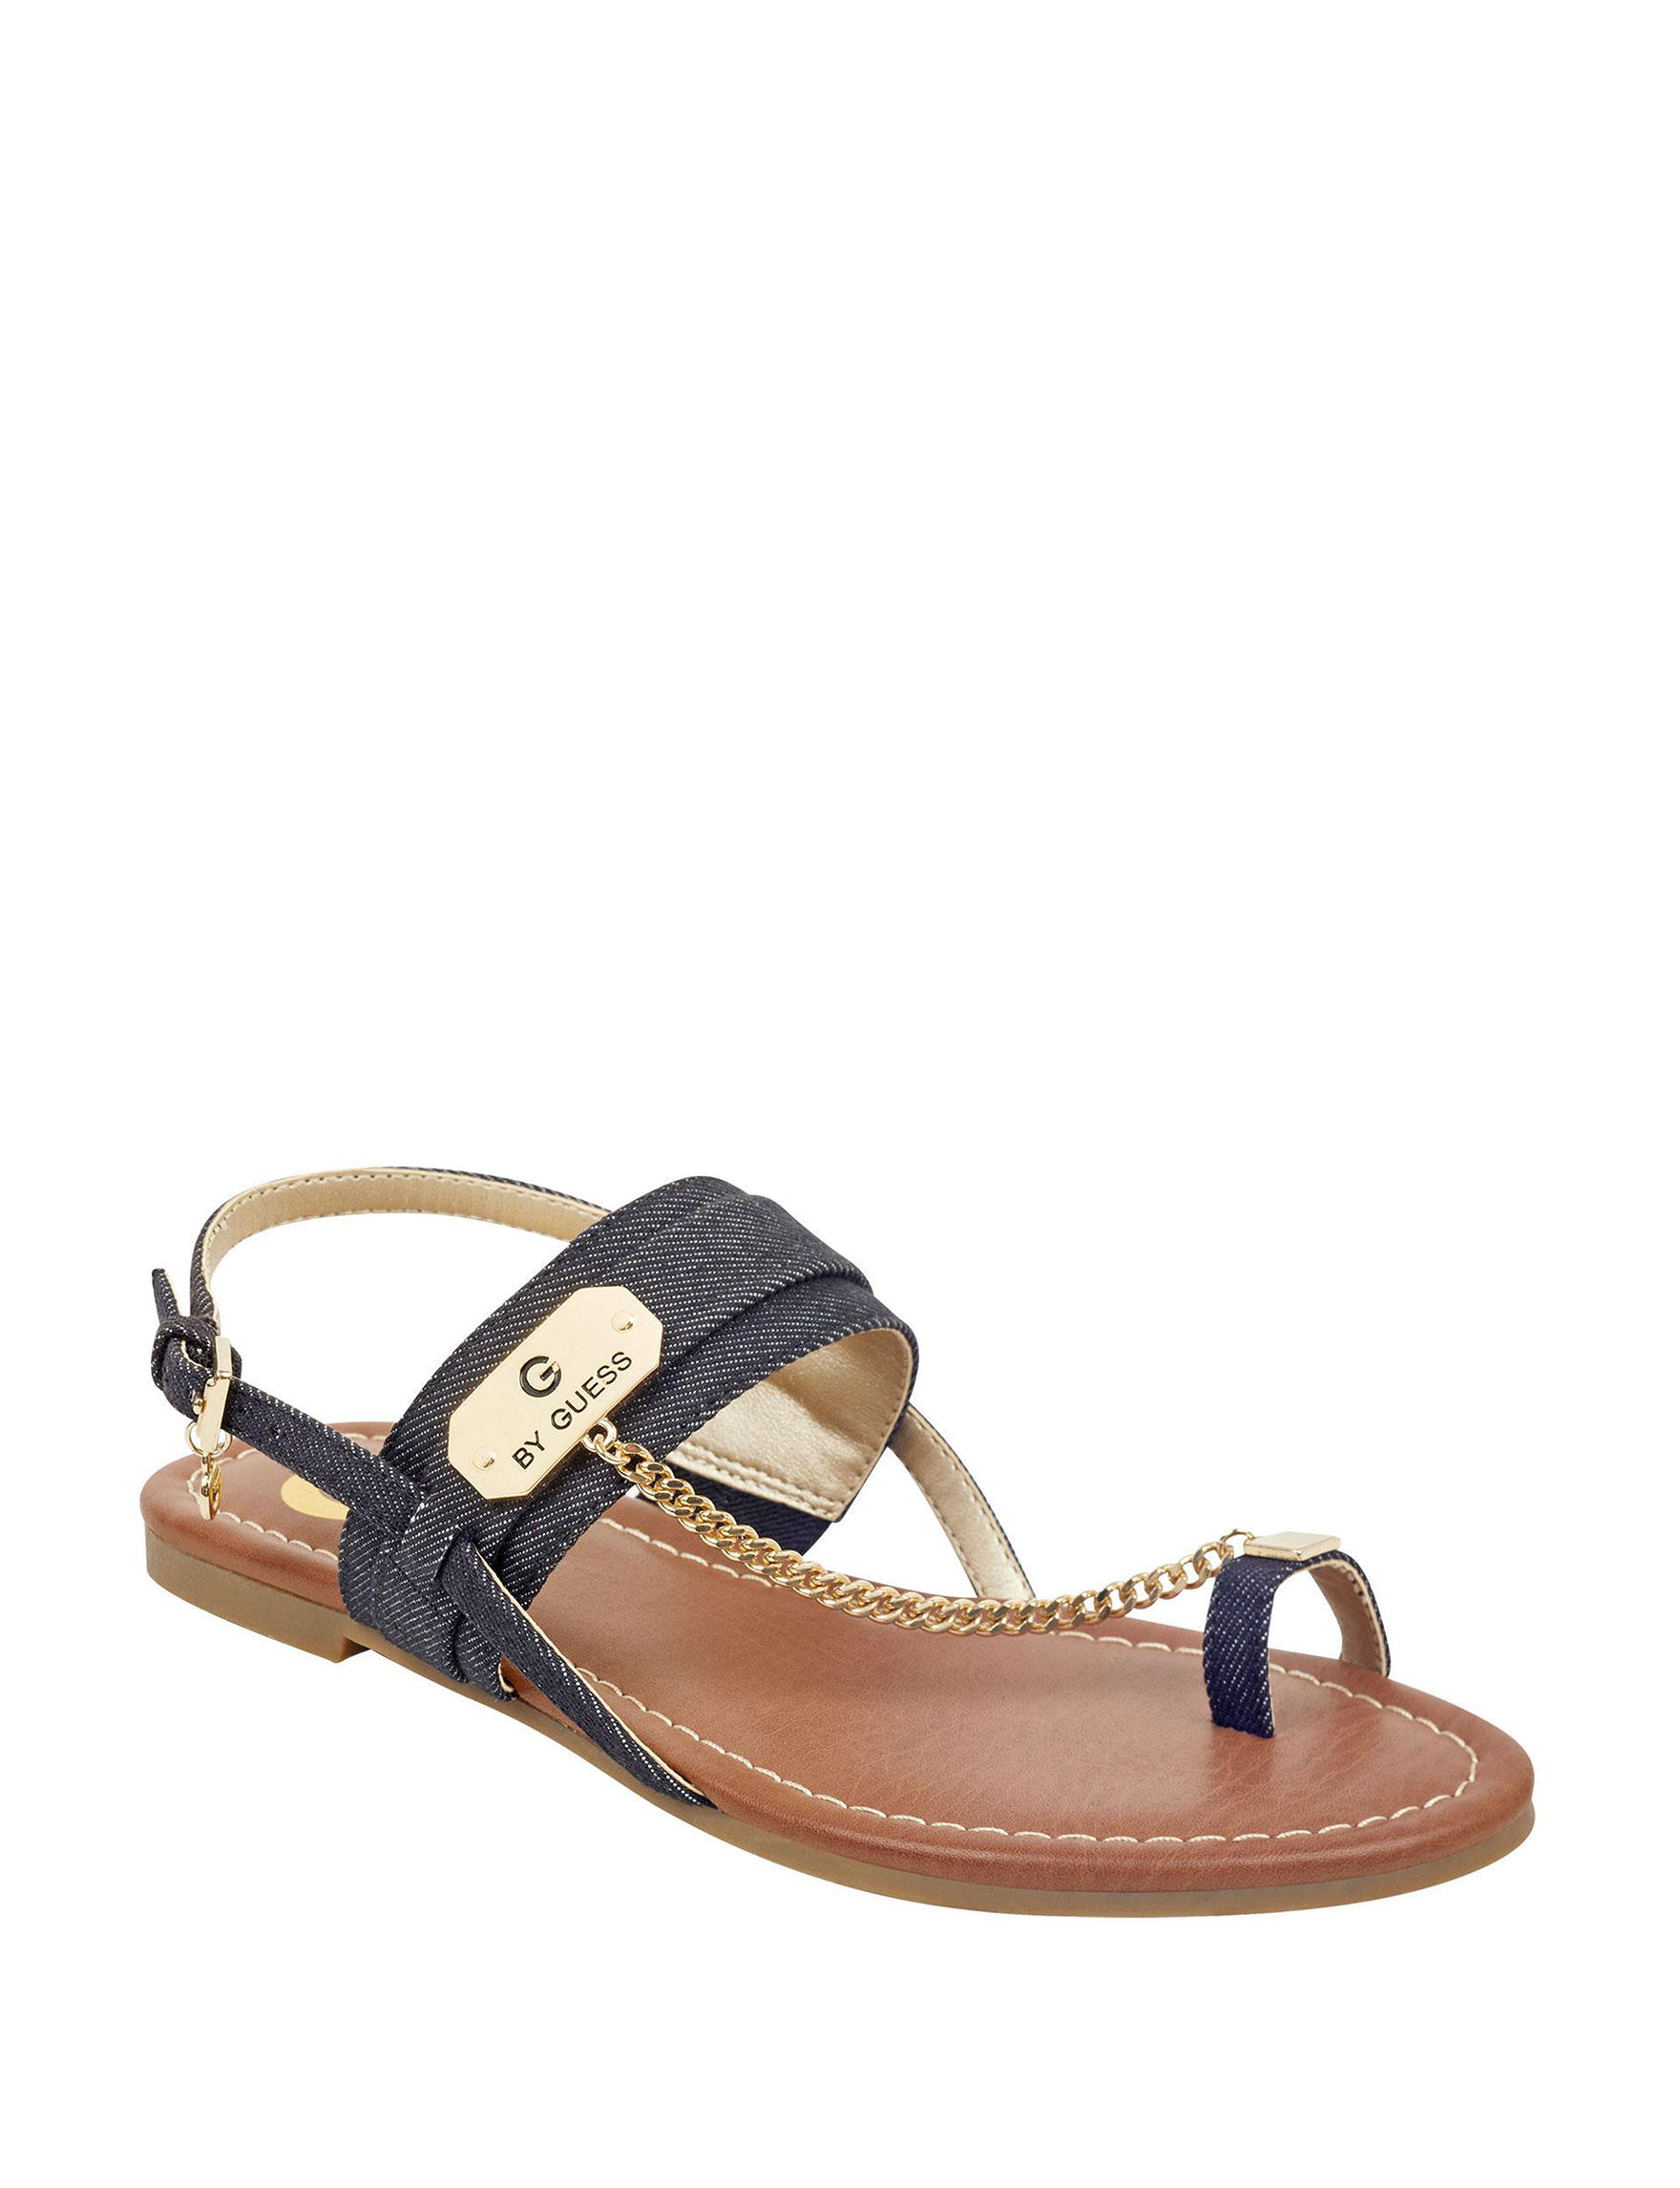 G by Guess Navy Flat Sandals